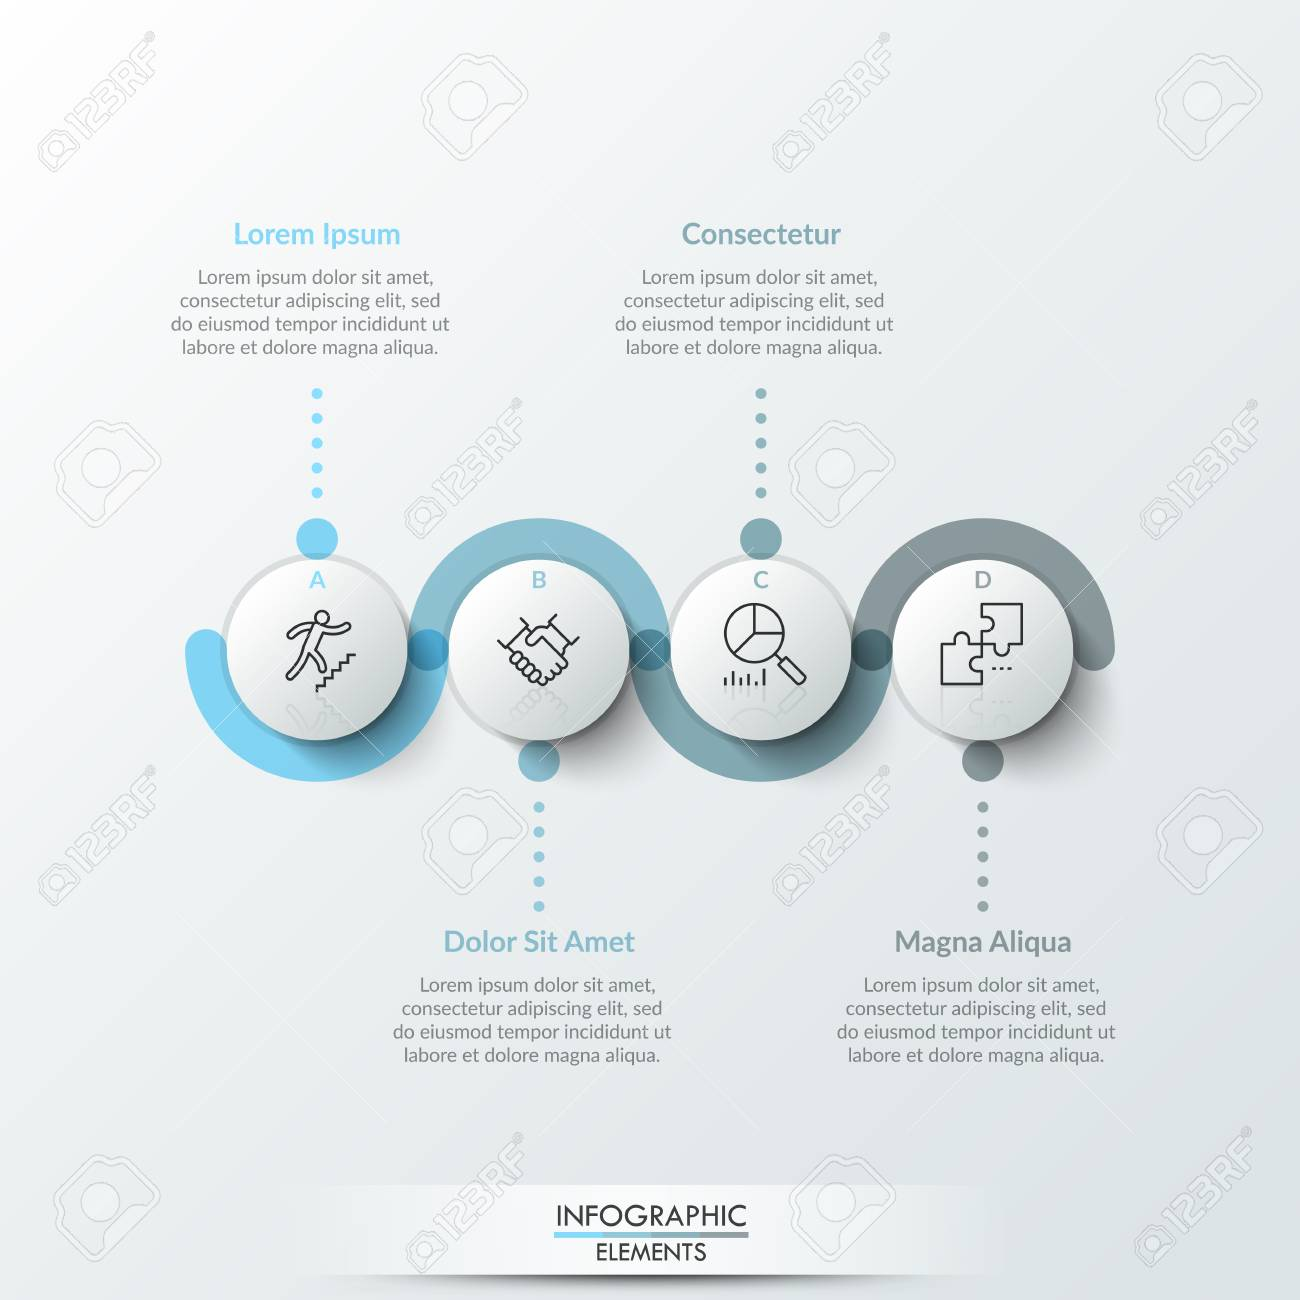 Four round paper white elements with linear symbols inside, translucent line curving around it and text boxes. Concept of 4 steps to business growth. Infographic design template. Vector illustration. - 102308643